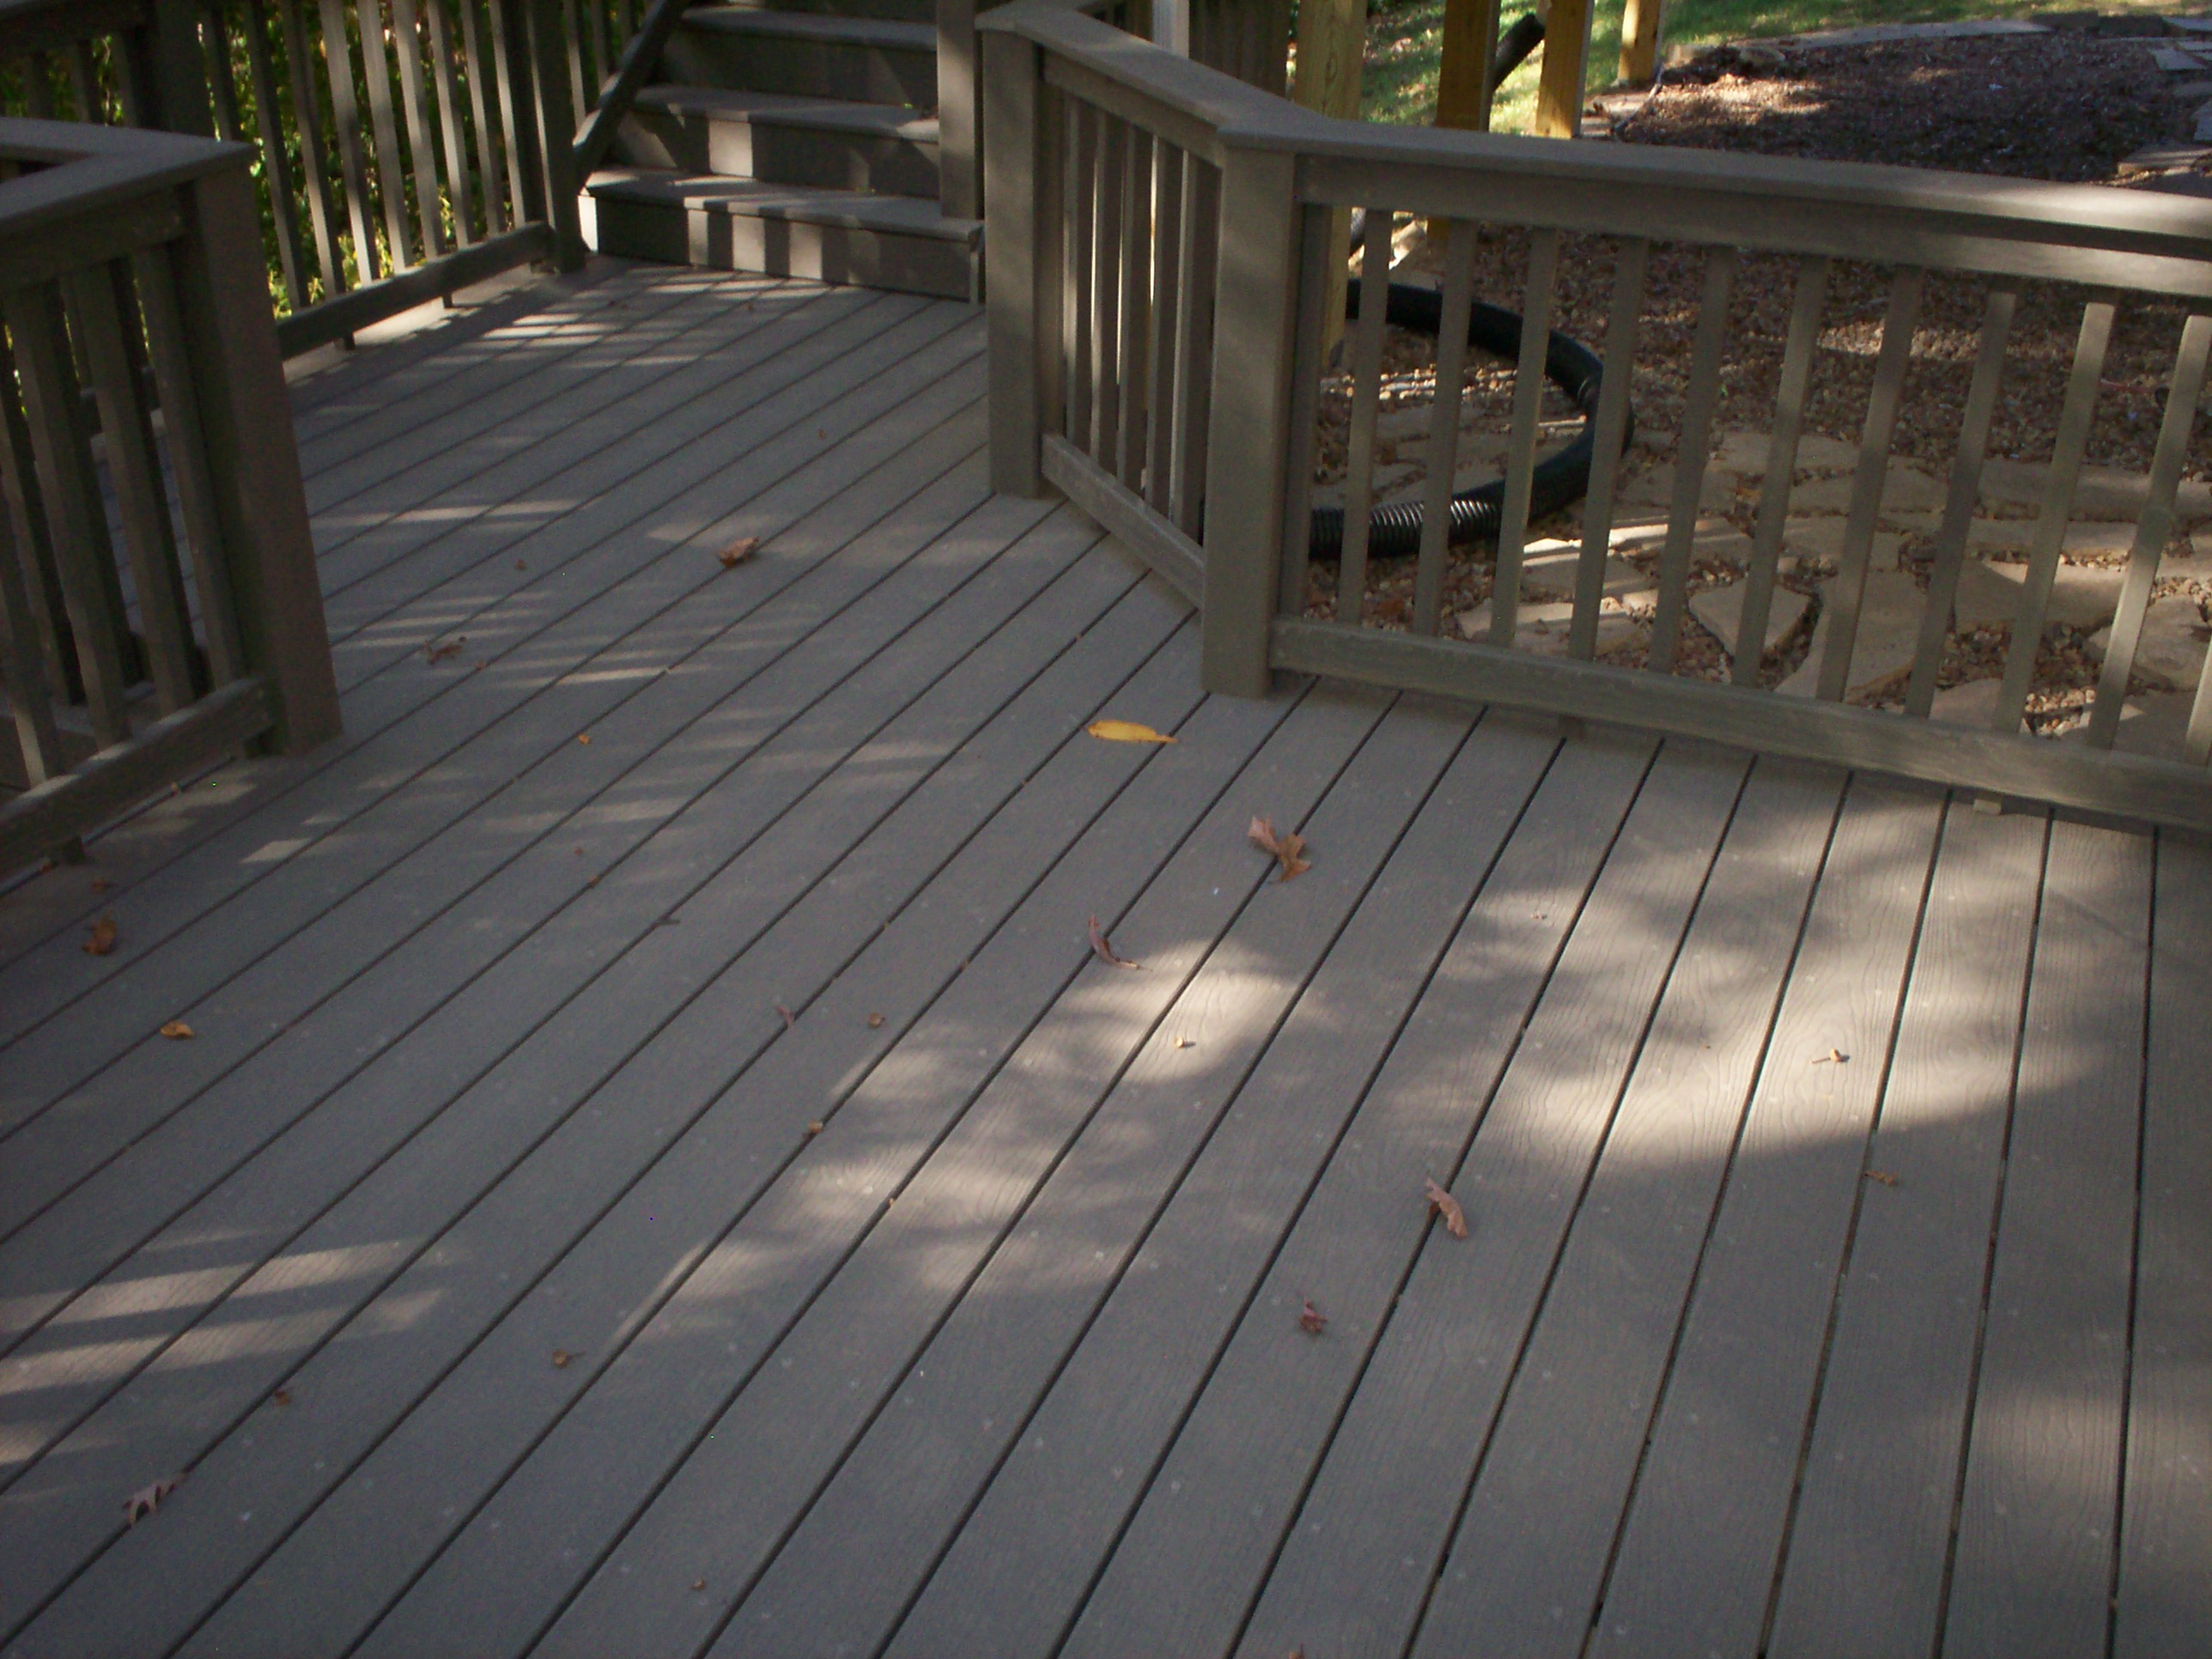 lightslategray evergrain decking matched with tan railing for patio decor ideas